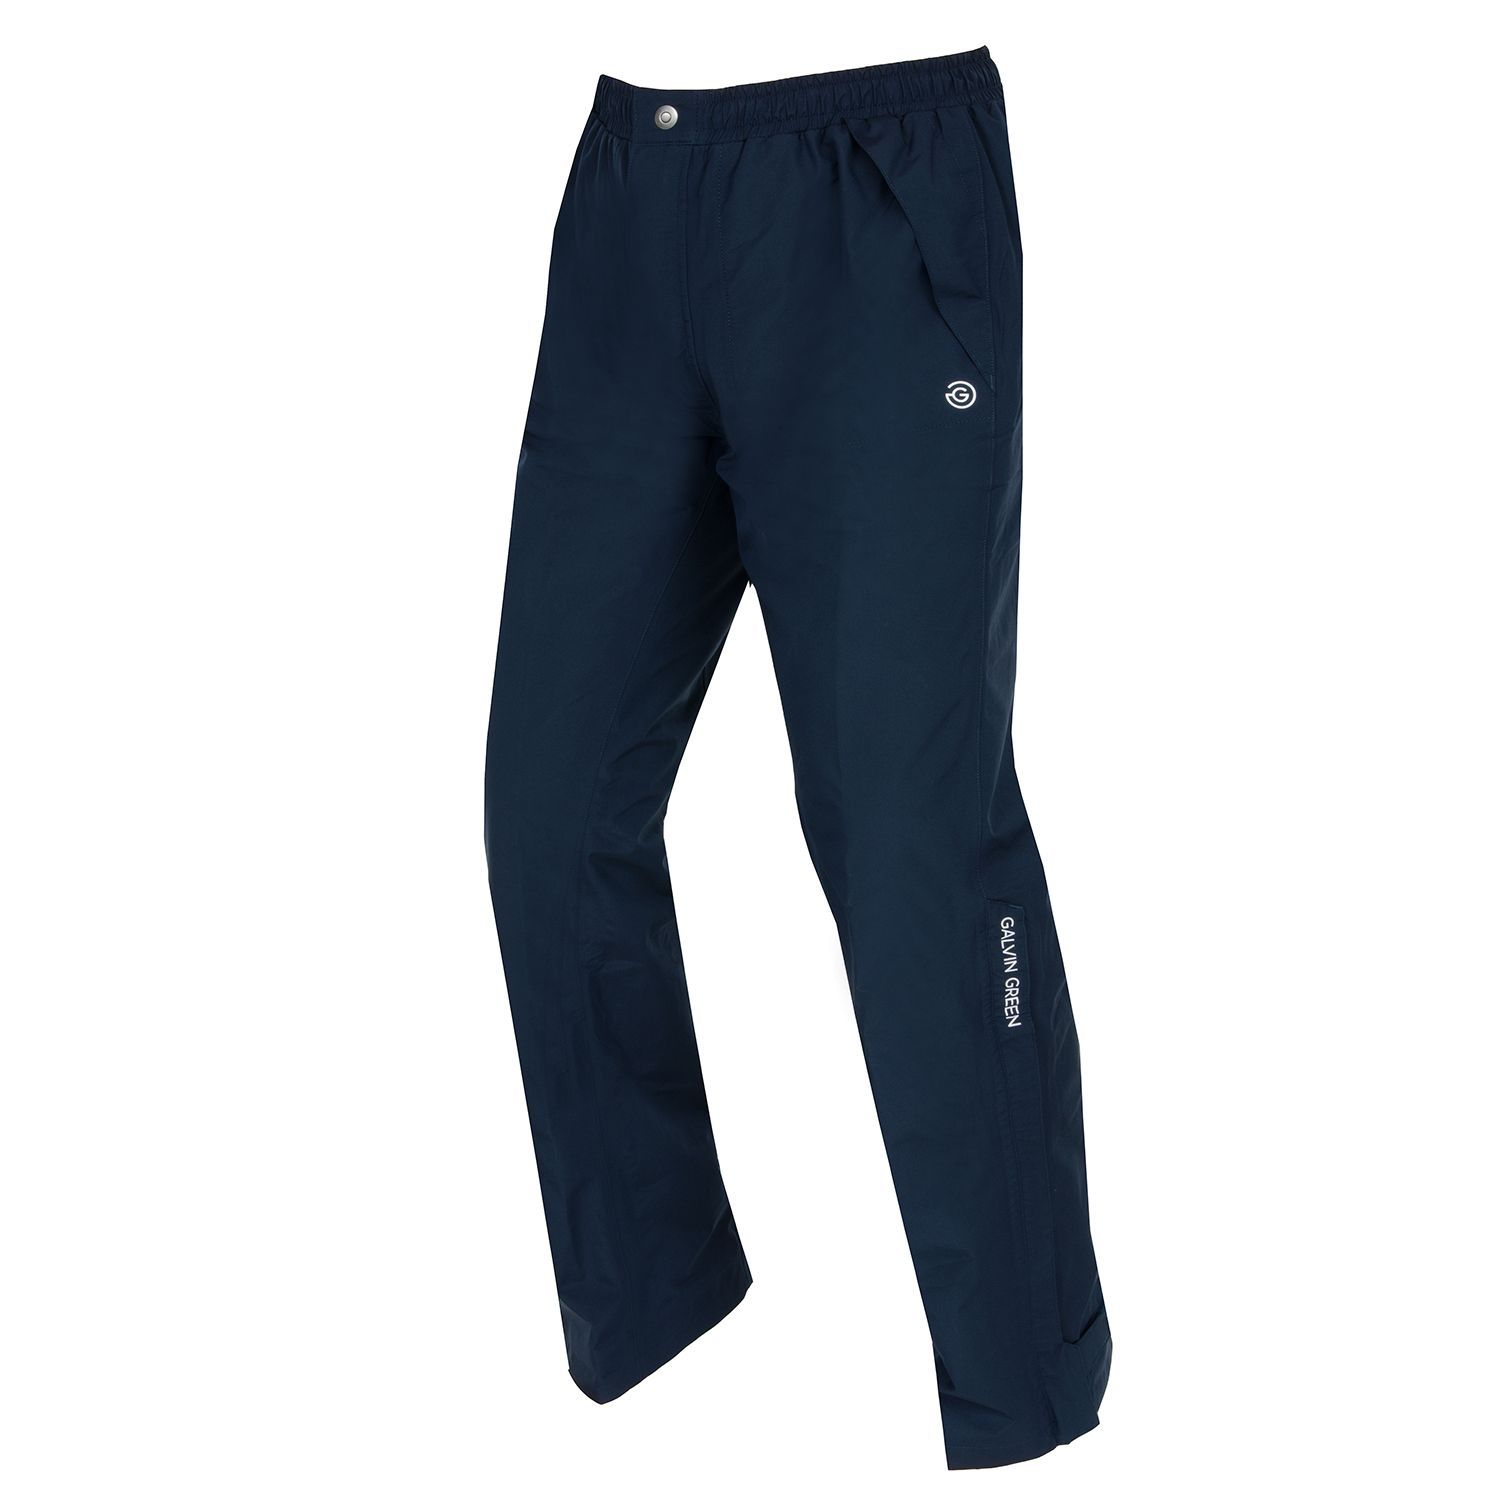 Galvin Green Andy Gore-Tex Waterproof Trousers in Navy